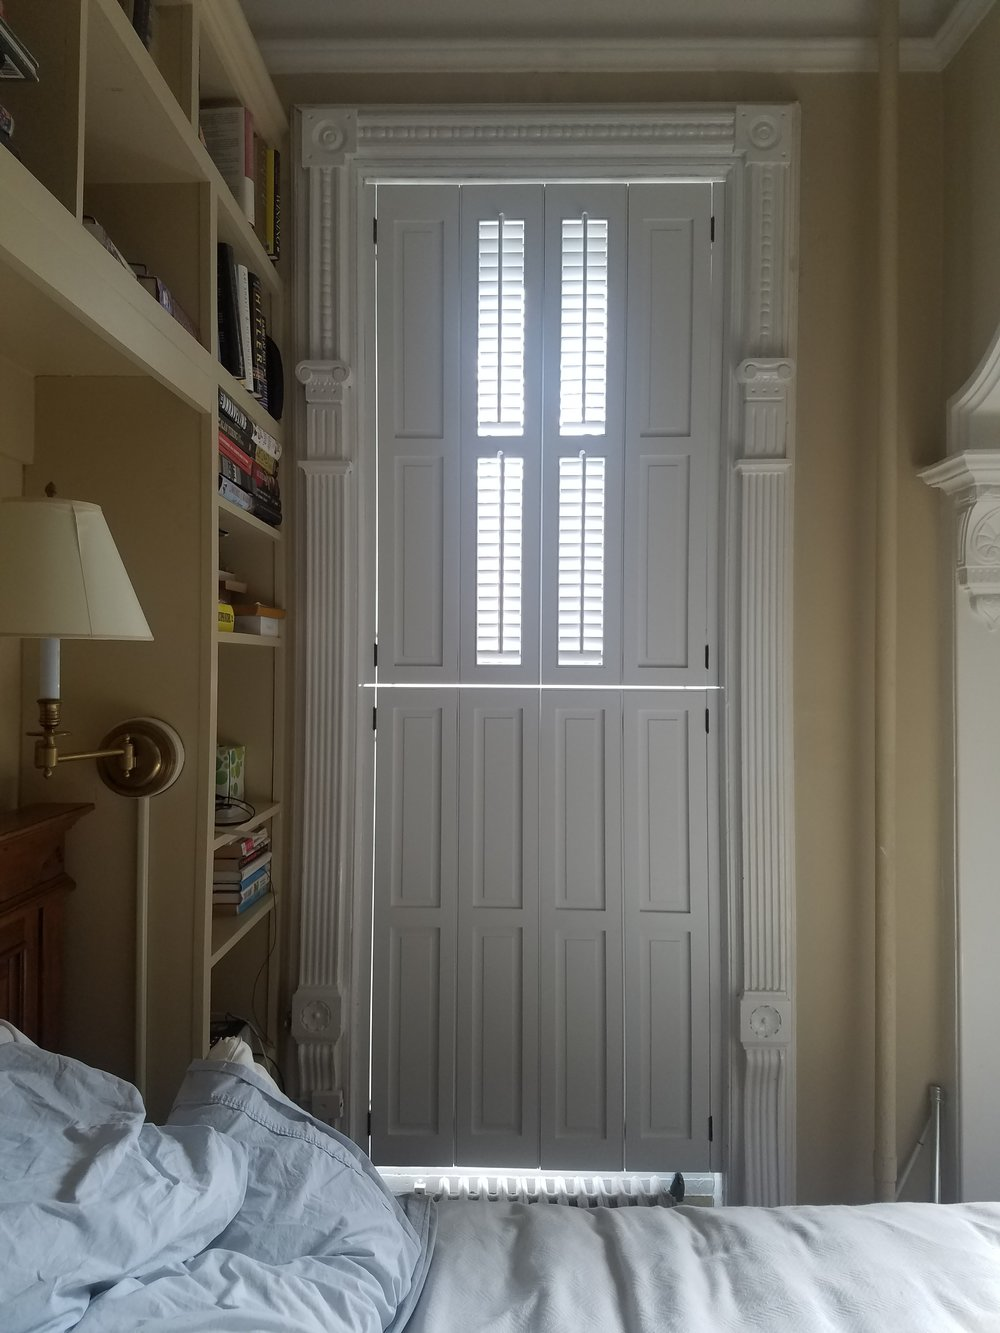 Traditional Window Shutters in Park Slope